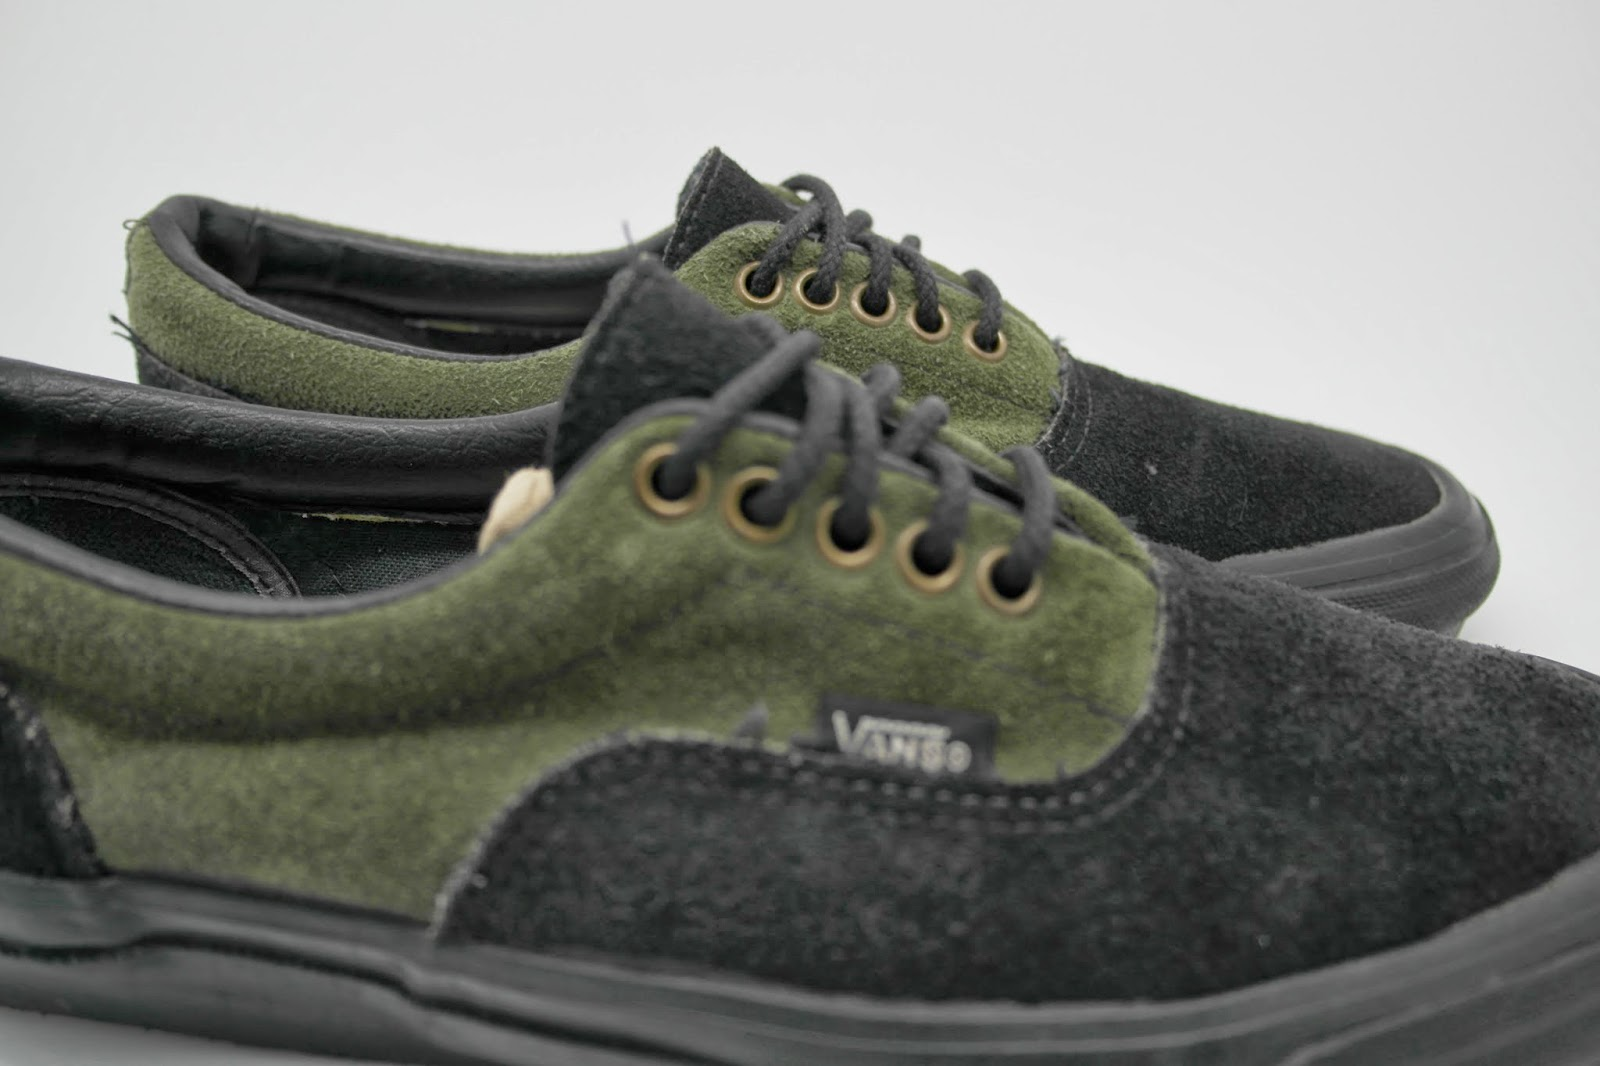 be13b60d68d090 vintage VANS style  95 2-tone suede green   black deck shoes MADE IN USA  90s US8 era